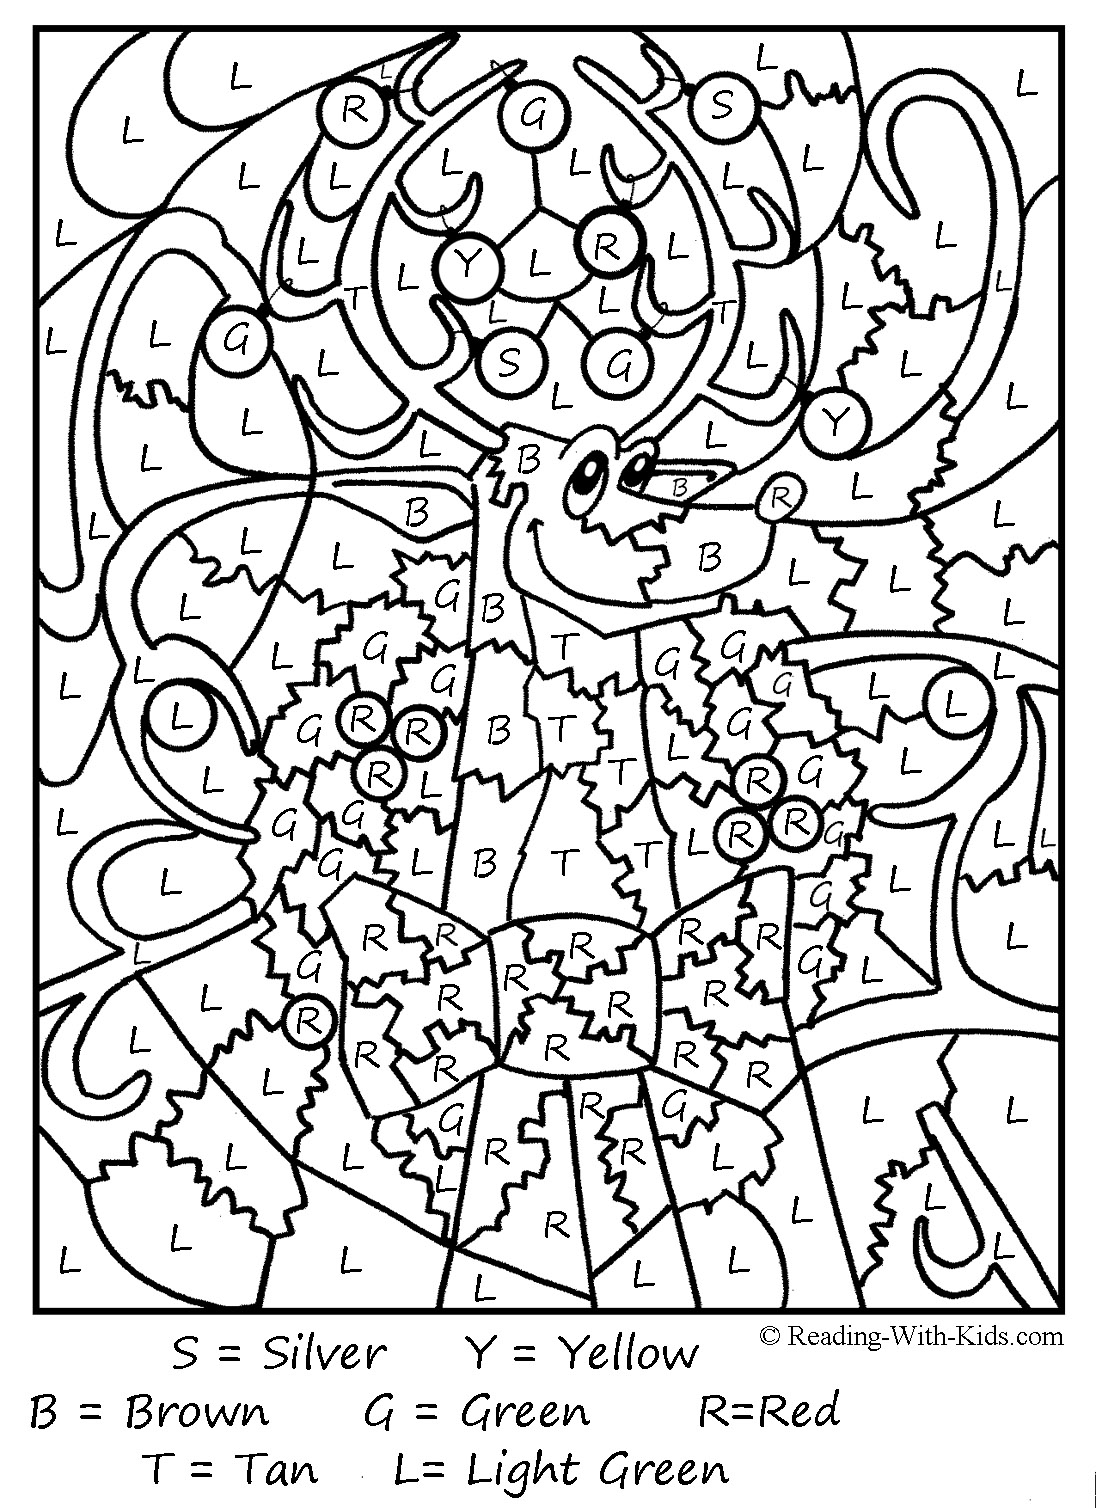 Merry Christmas Letters Coloring Pages With All Holiday